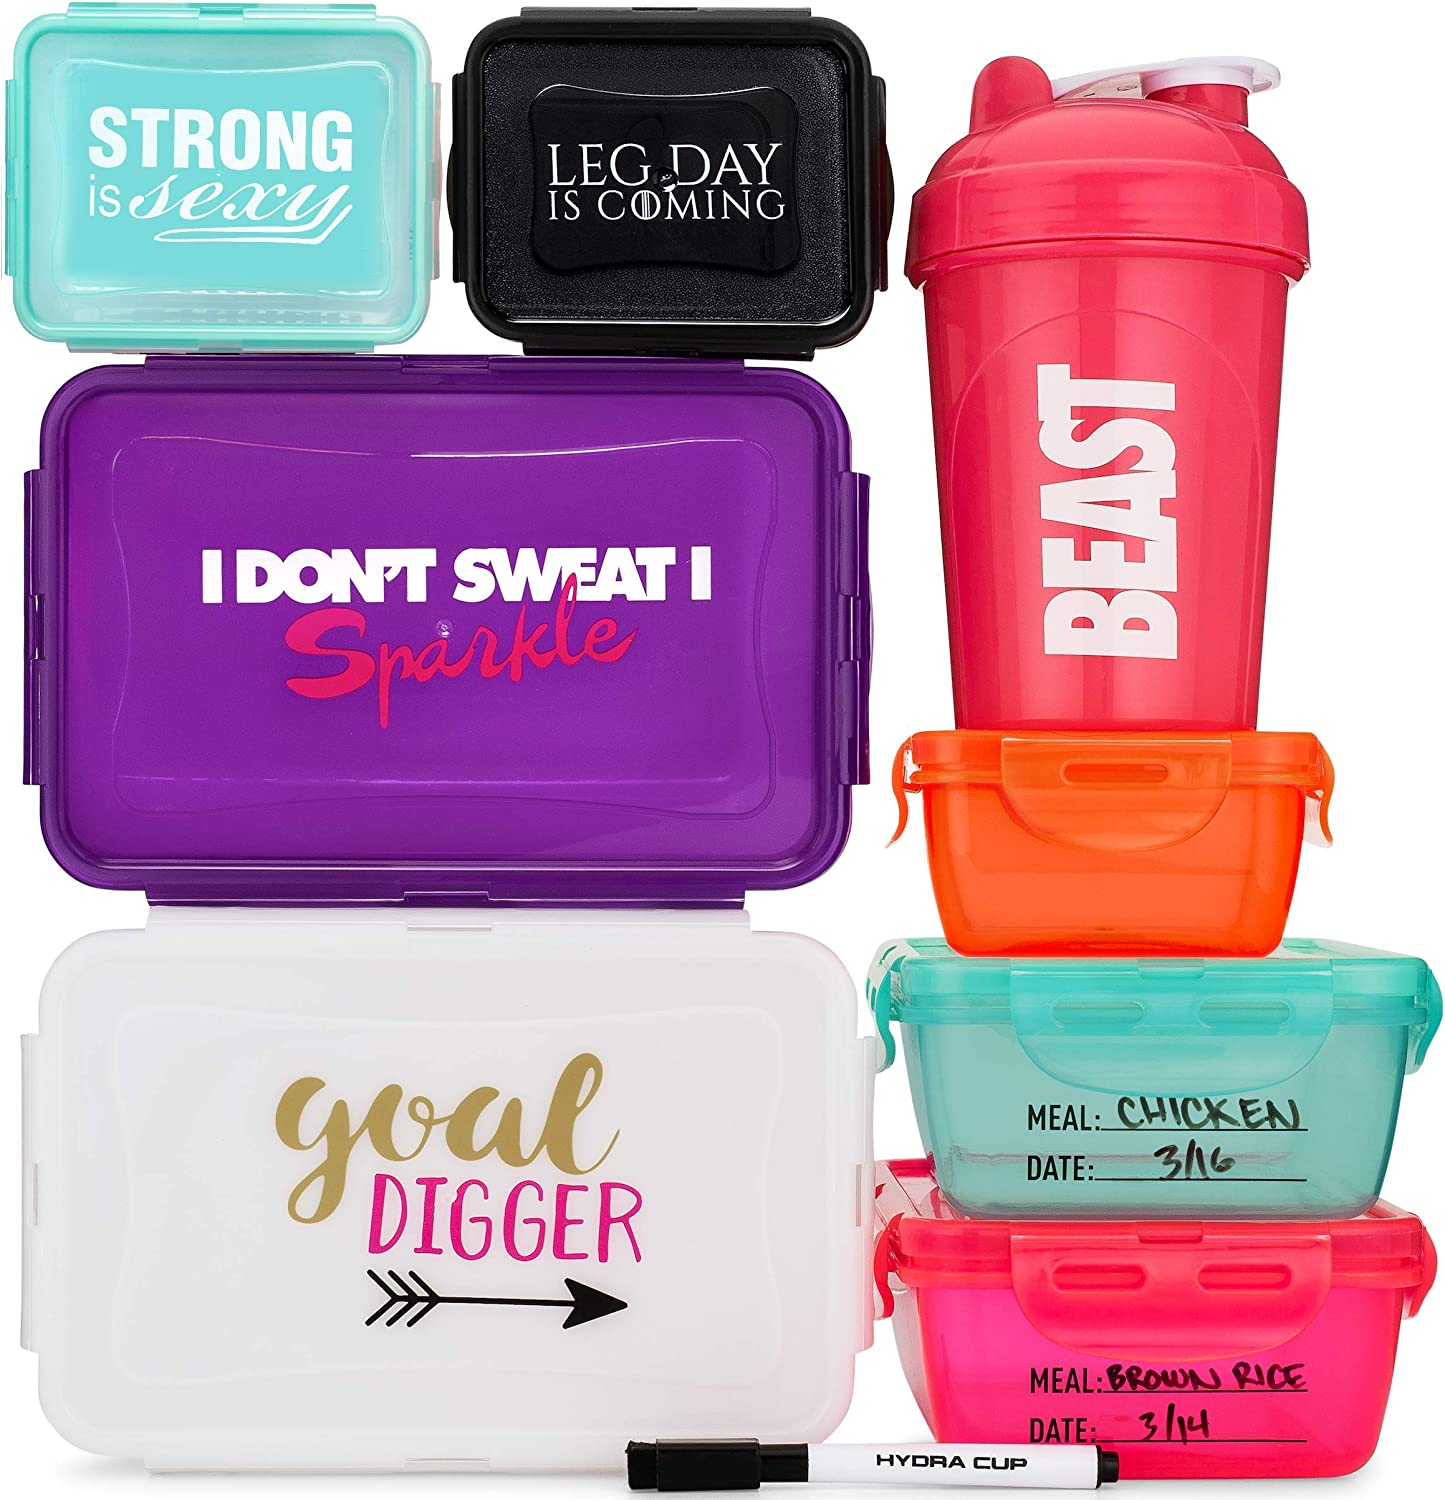 Hydra Prep [12 Piece] Reusable & Recyclable Meal Containers with Snapping Lids, Multi Colored Meal Prep Storage Containers with Marker System & Shaker Bottle